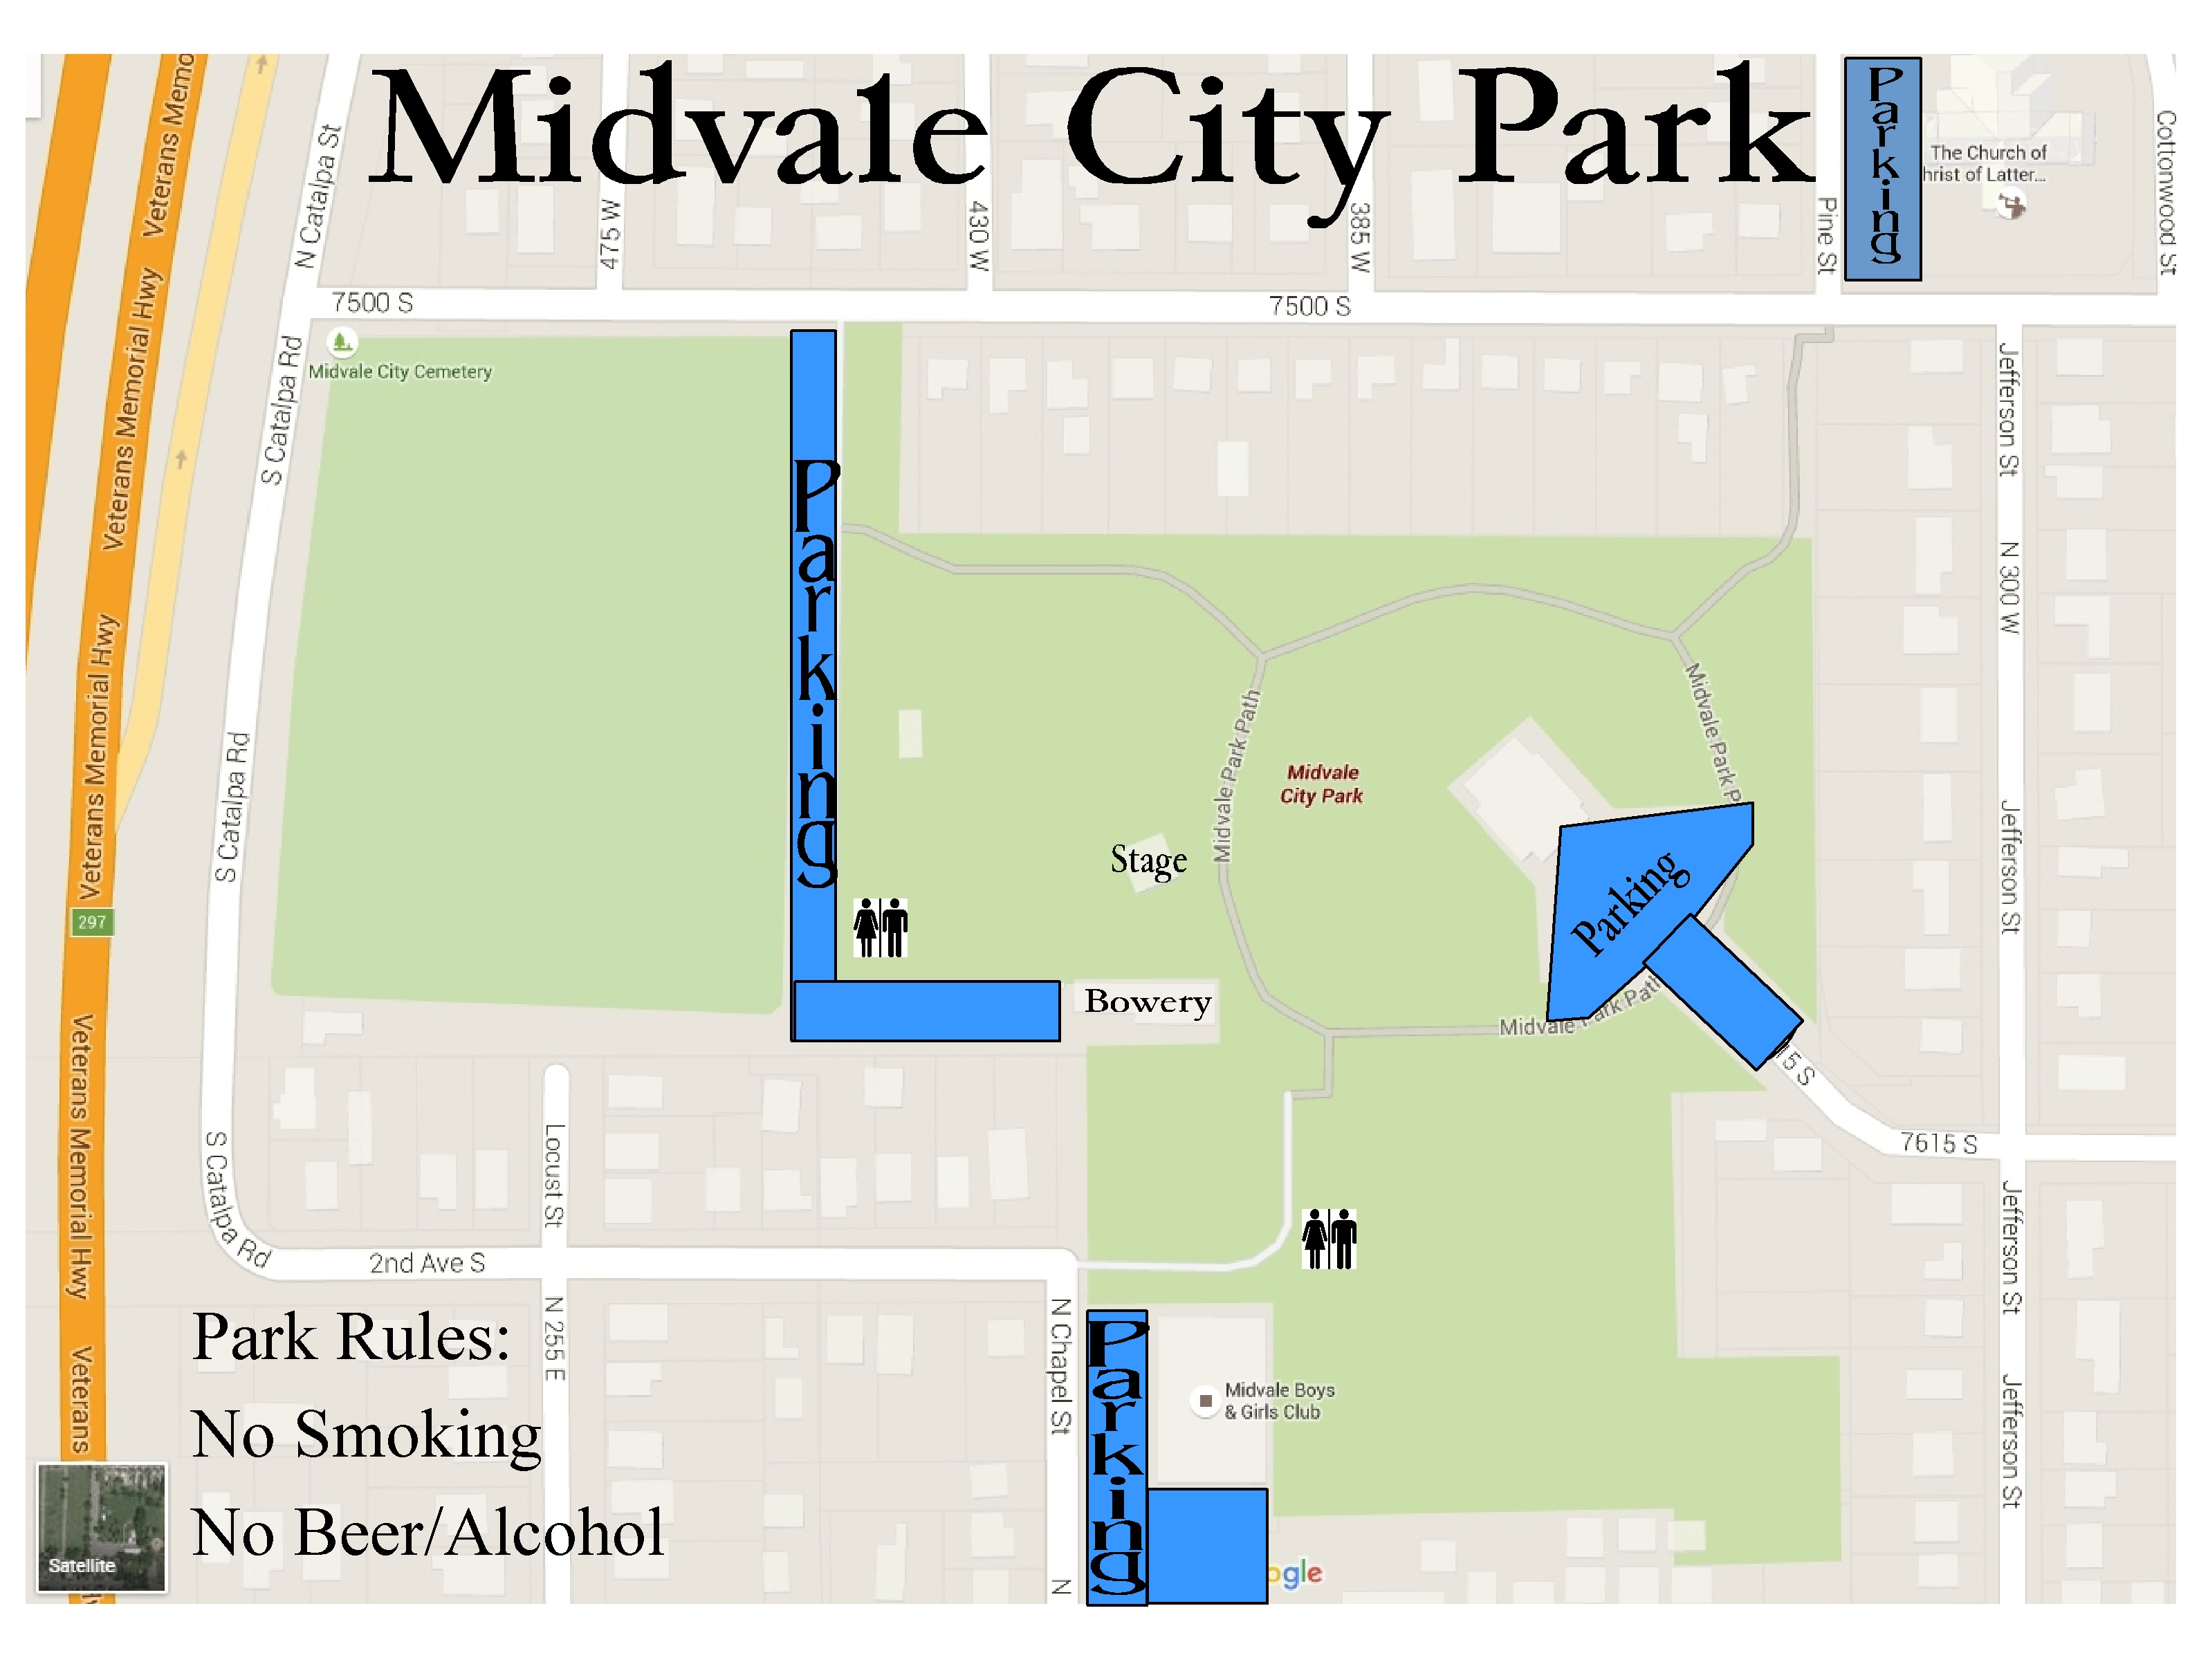 Midvale_City_Park_Map.jpg